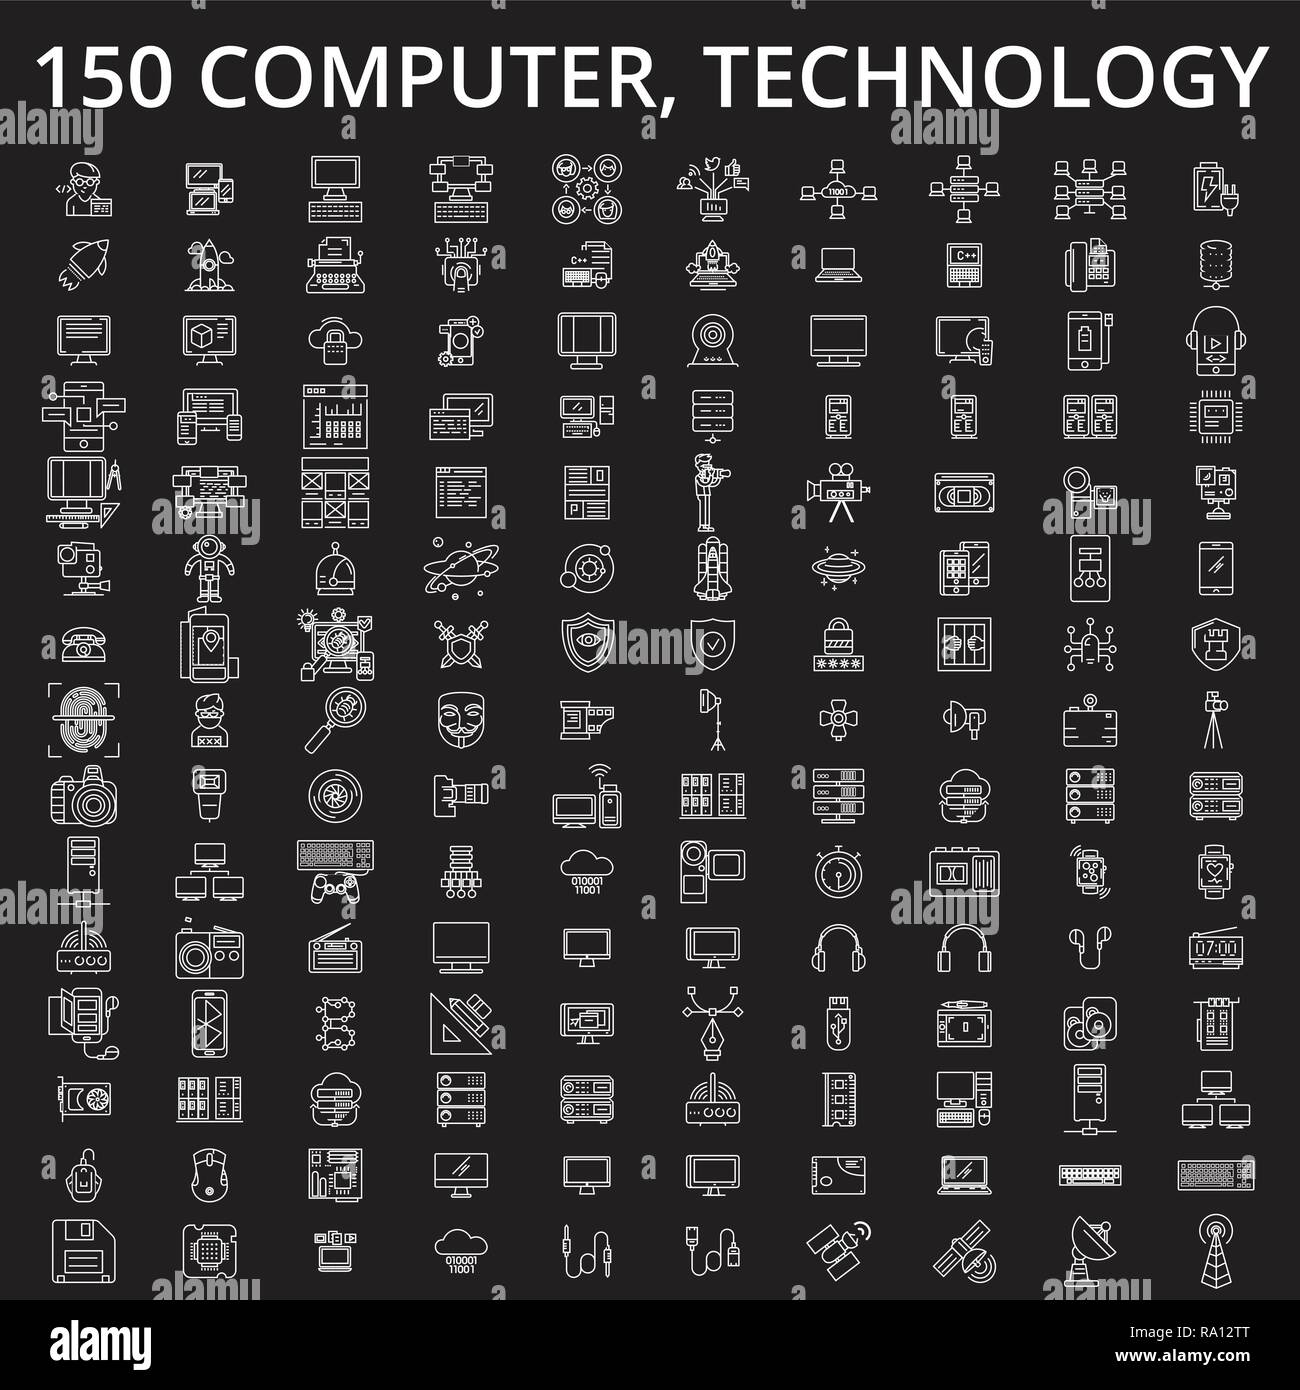 Computer, technology editable line icons vector set on black background. Computer, technology white outline illustrations, signs, symbols - Stock Image